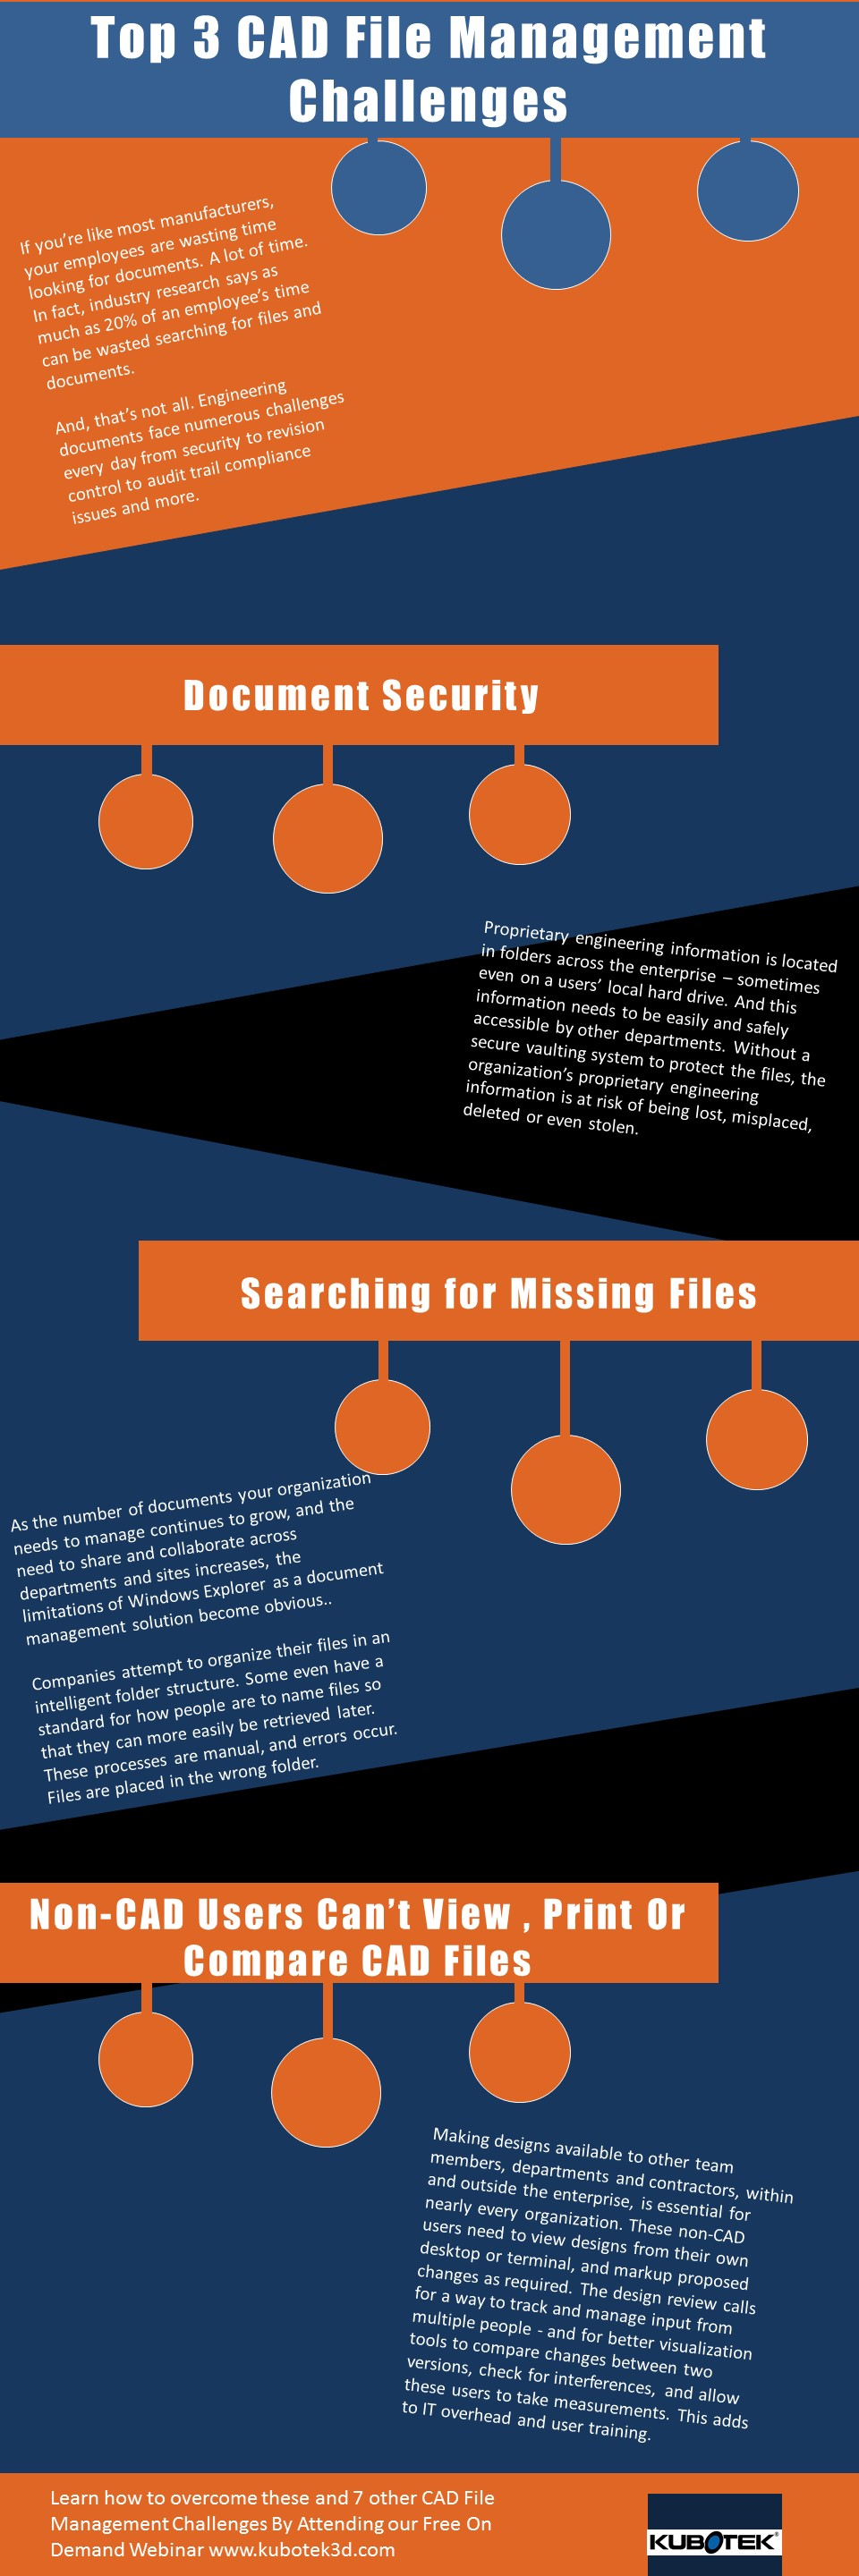 [Infographic] Top 3 CAD File Management Challenges